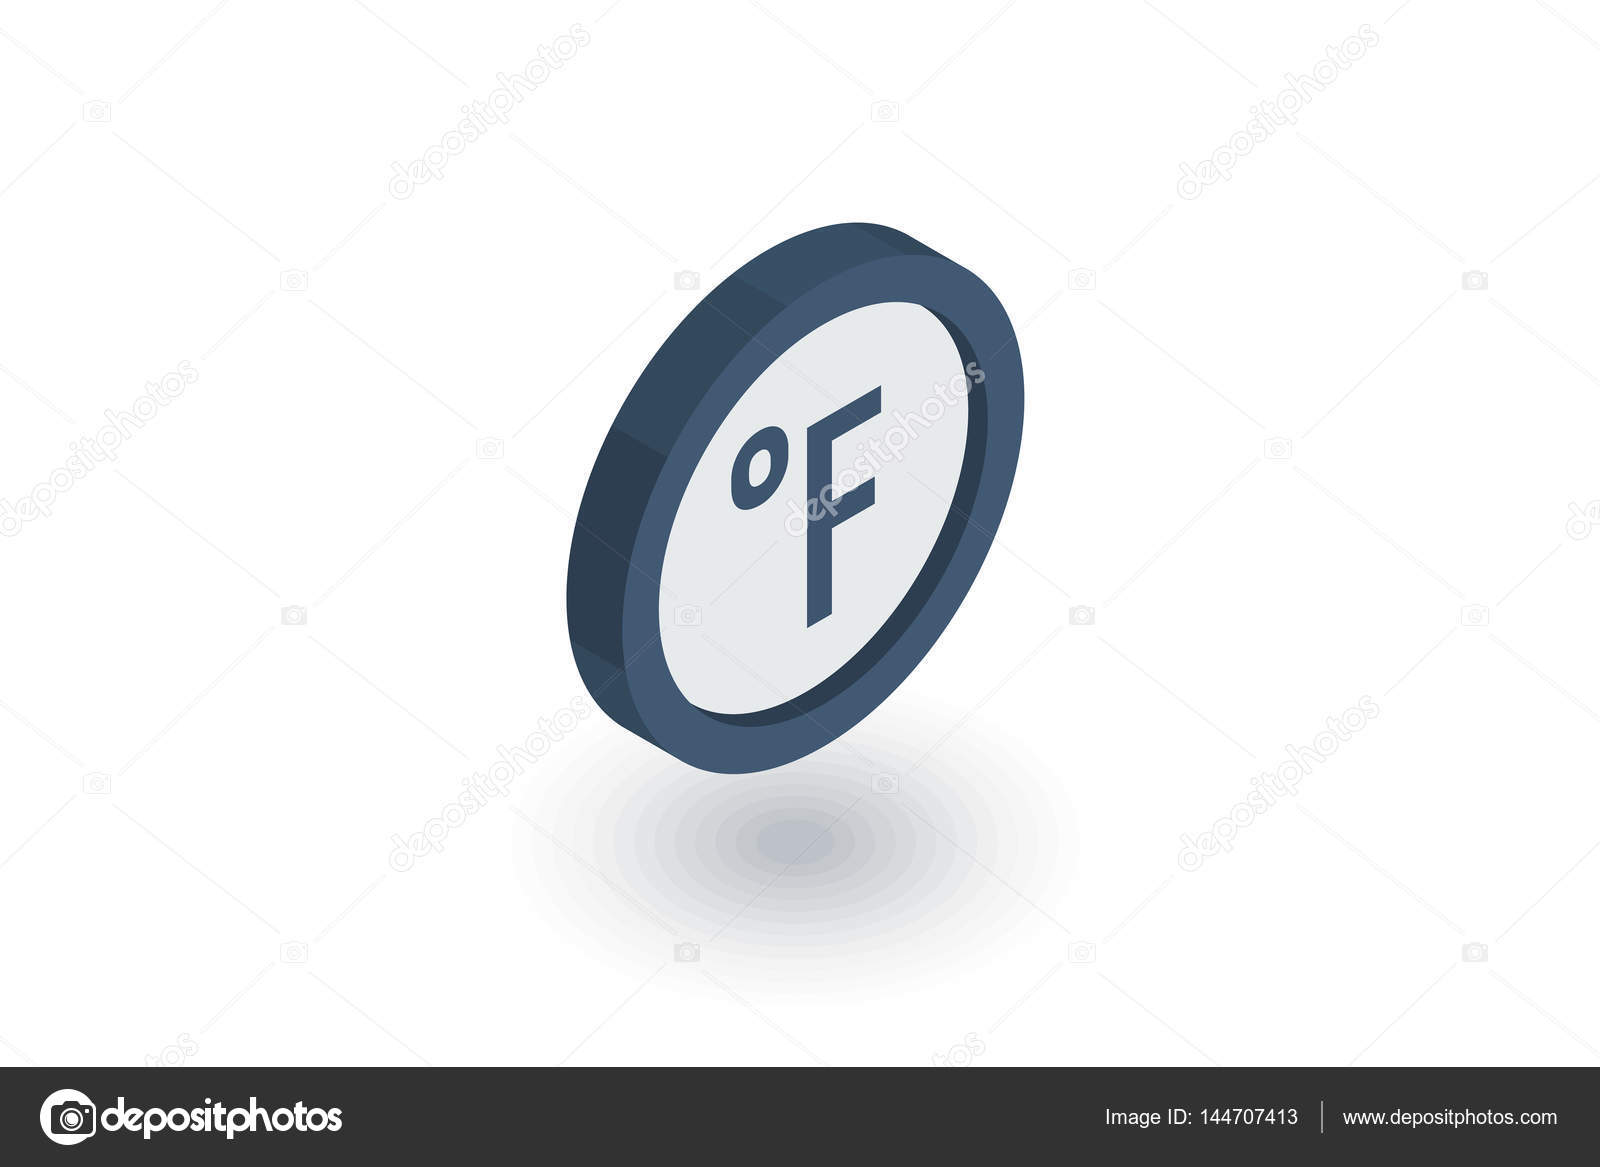 Degree fahrenheit isometric flat icon 3d vector stock vector degree fahrenheit isometric flat icon 3d vector colorful illustration pictogram isolated on white background vector by rhilch biocorpaavc Choice Image